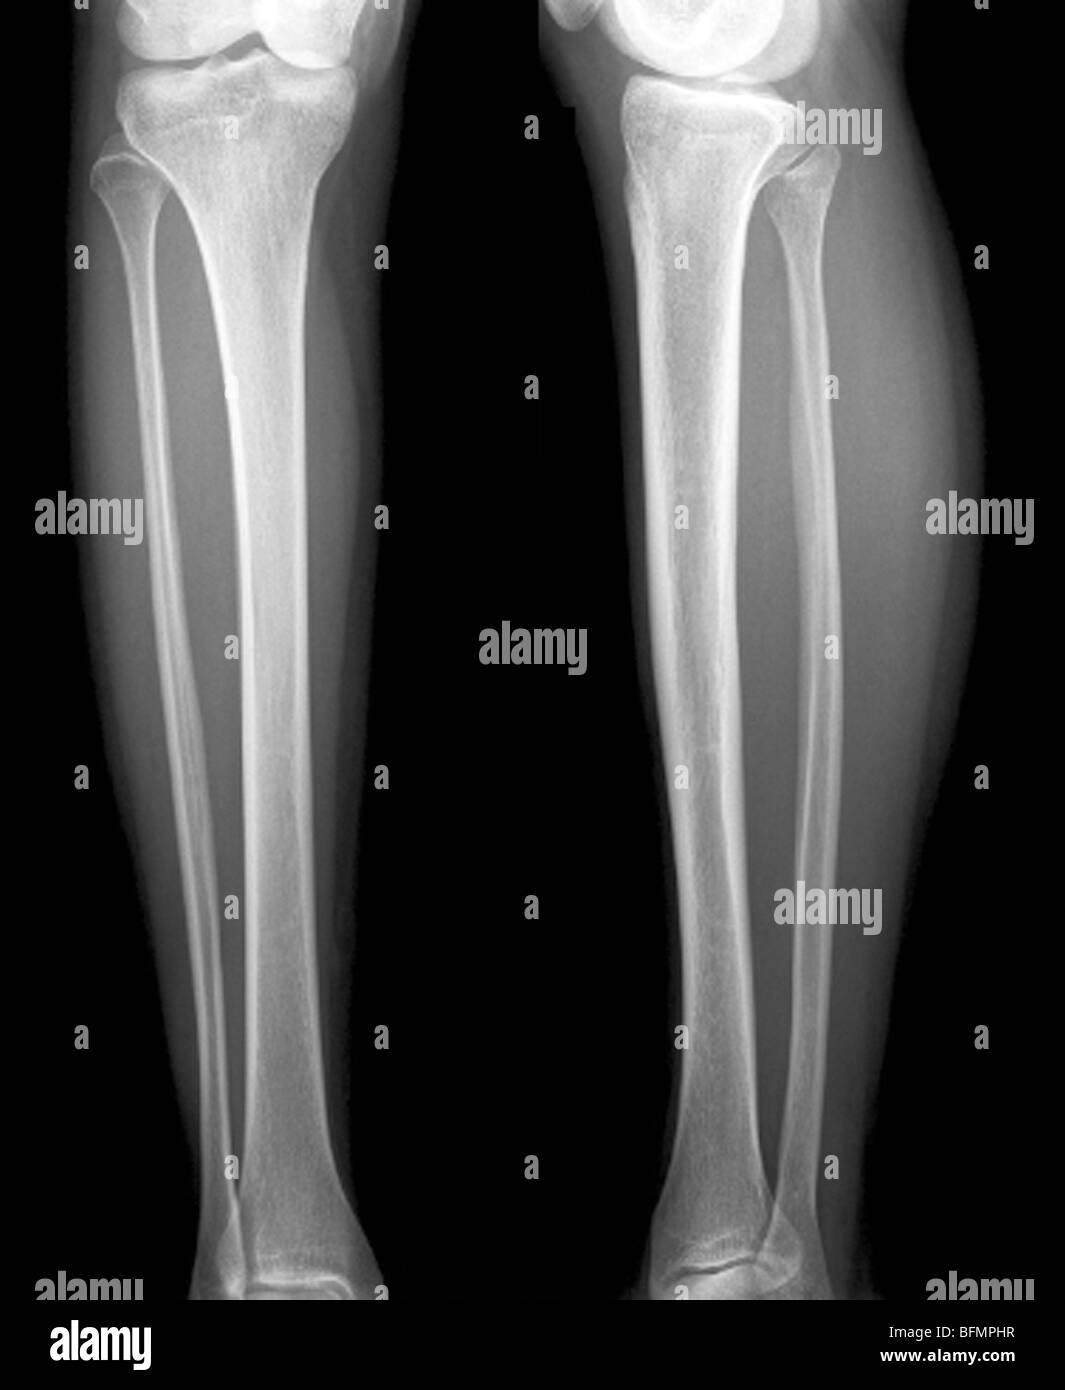 Normal Lower Legs X Ray Stock Photo Royalty Free Image